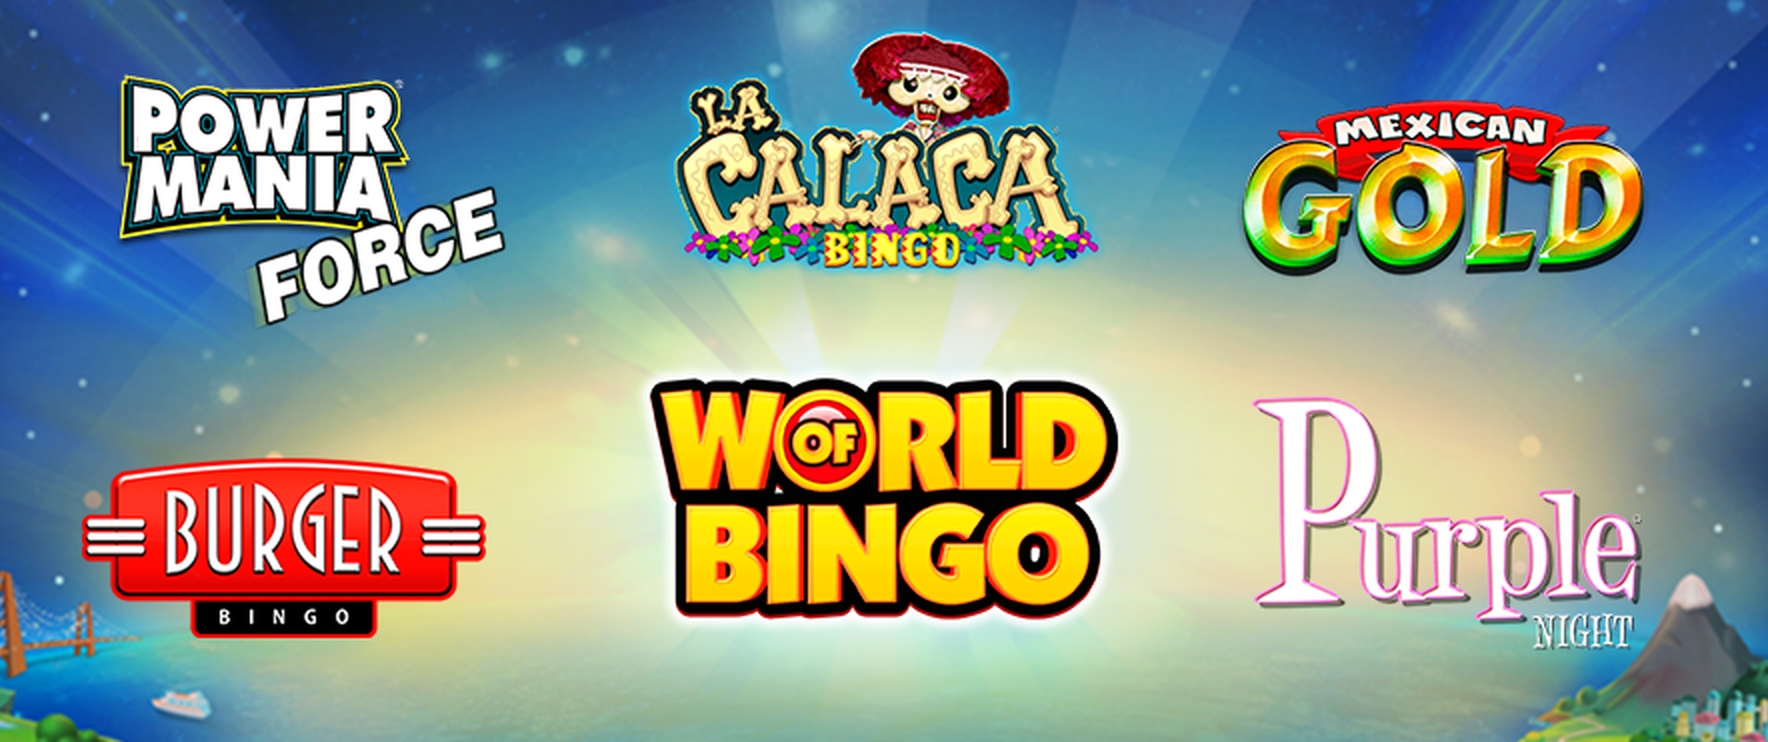 The La Calaca Bingo Online Slot Demo Game by Zitro